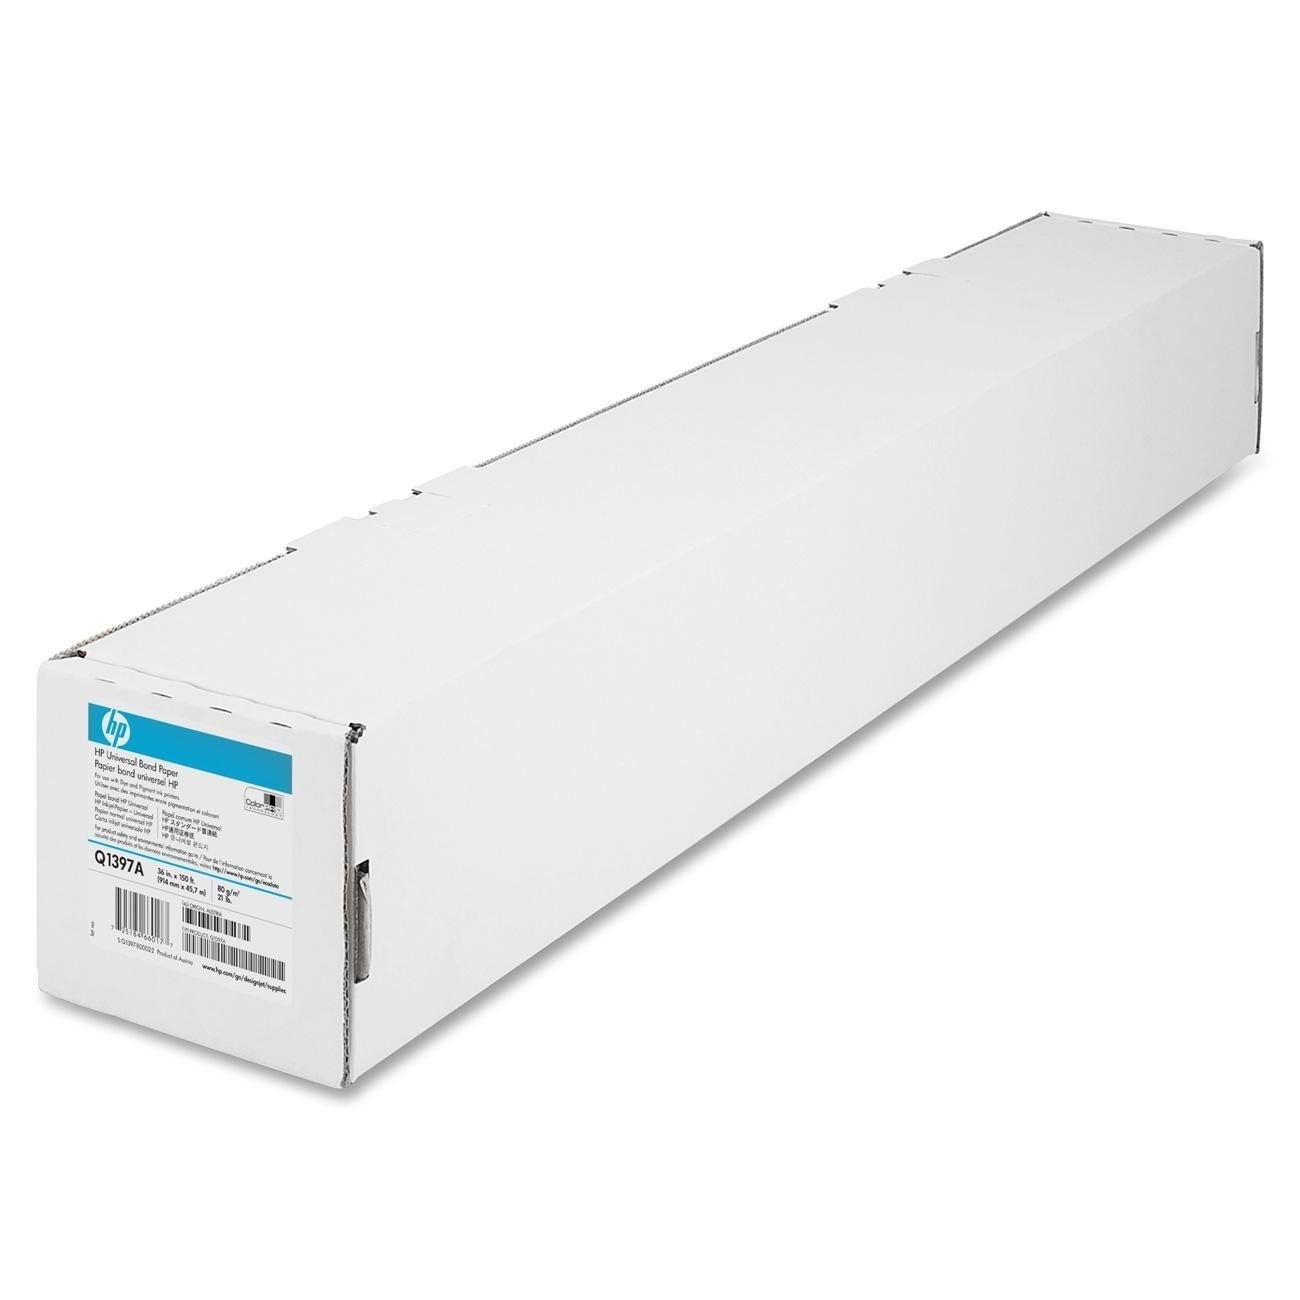 Original HP Q1397A 80gsm 36in x 150ft Paper Roll (Q1397A)